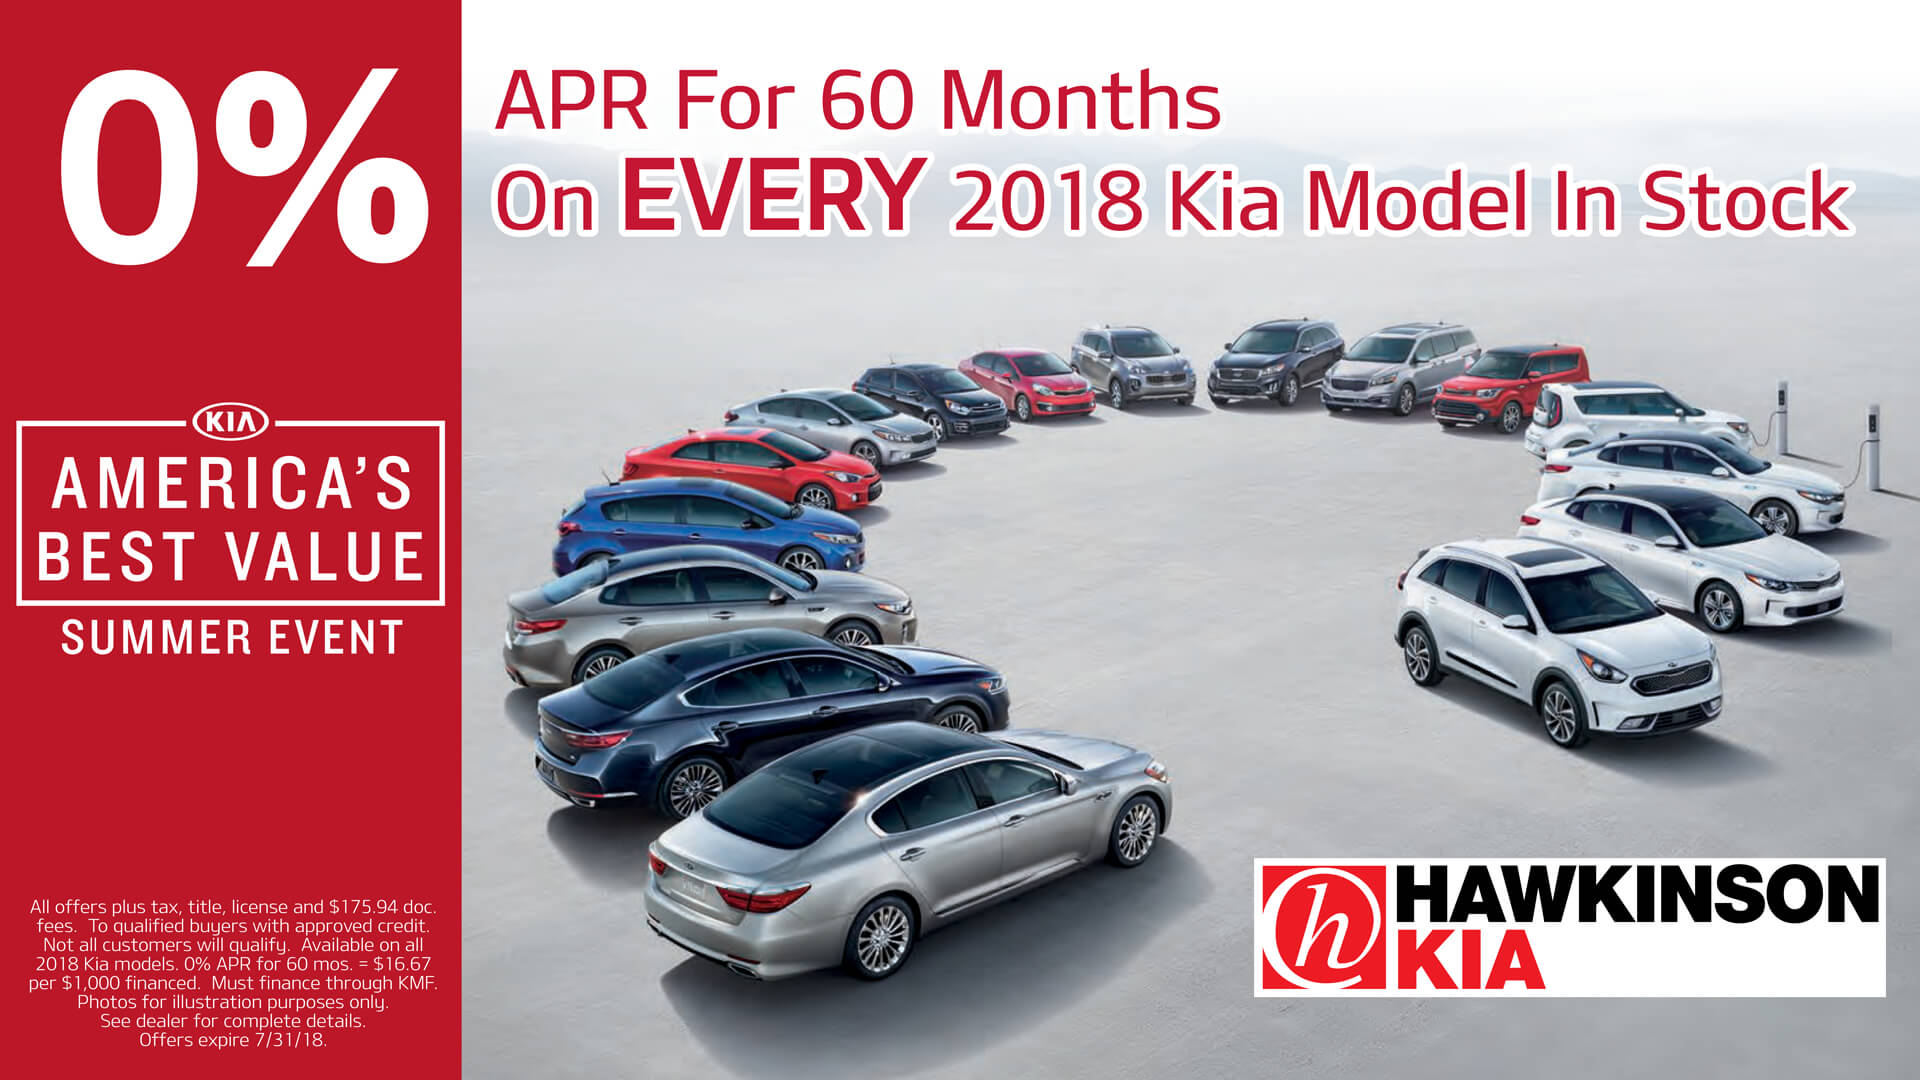 0% APR For 60 Months on EVERY 2018 Kia Model In Stock